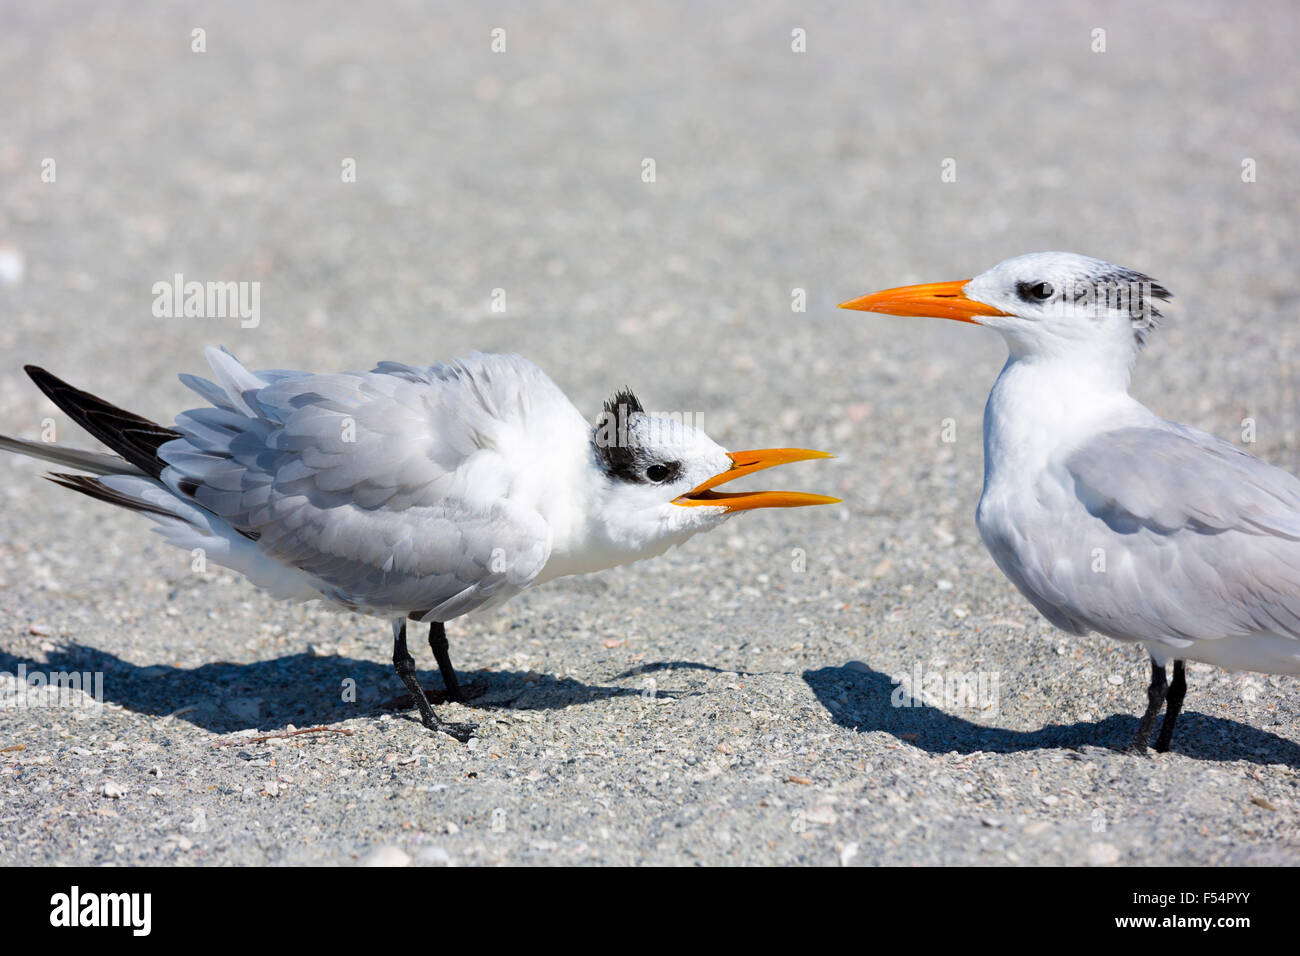 Pair of Royal Terns squabble in conversation, one talking and the other listening, on the beach at Captiva Island, - Stock Image